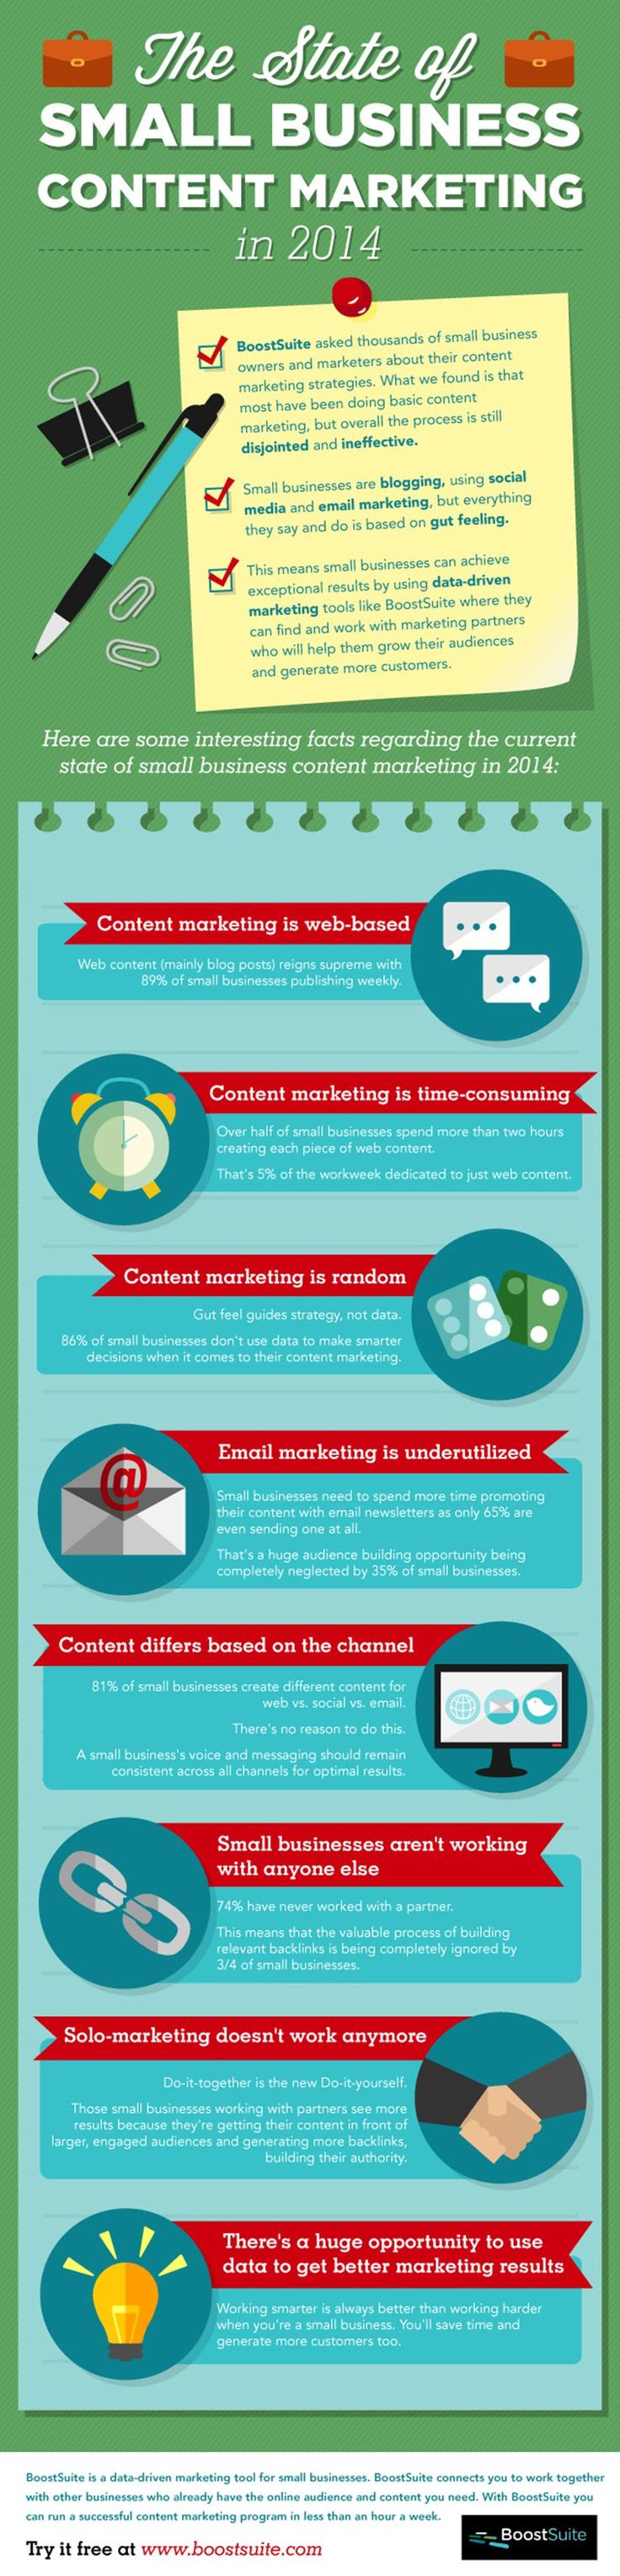 The State of Small Business Content Marketing in 2014